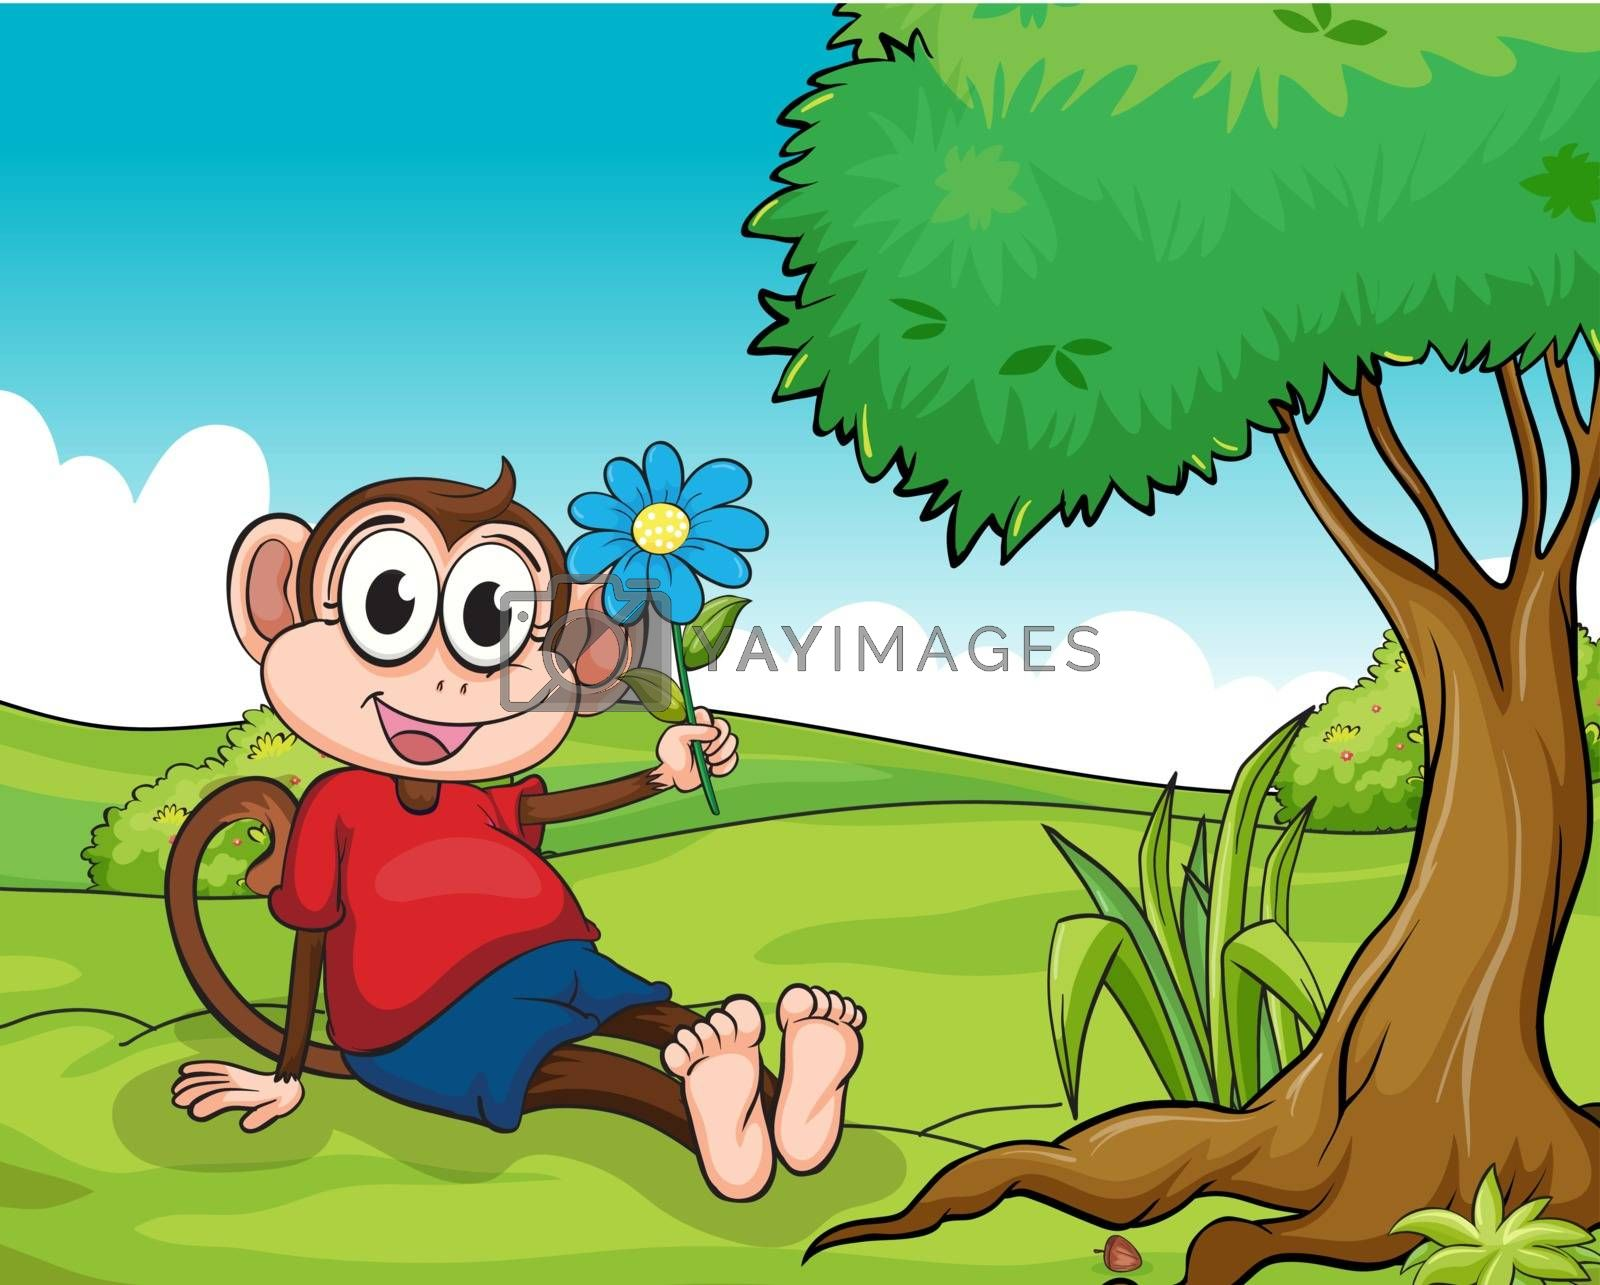 Illustration of a smiling monkey sitting under a tree